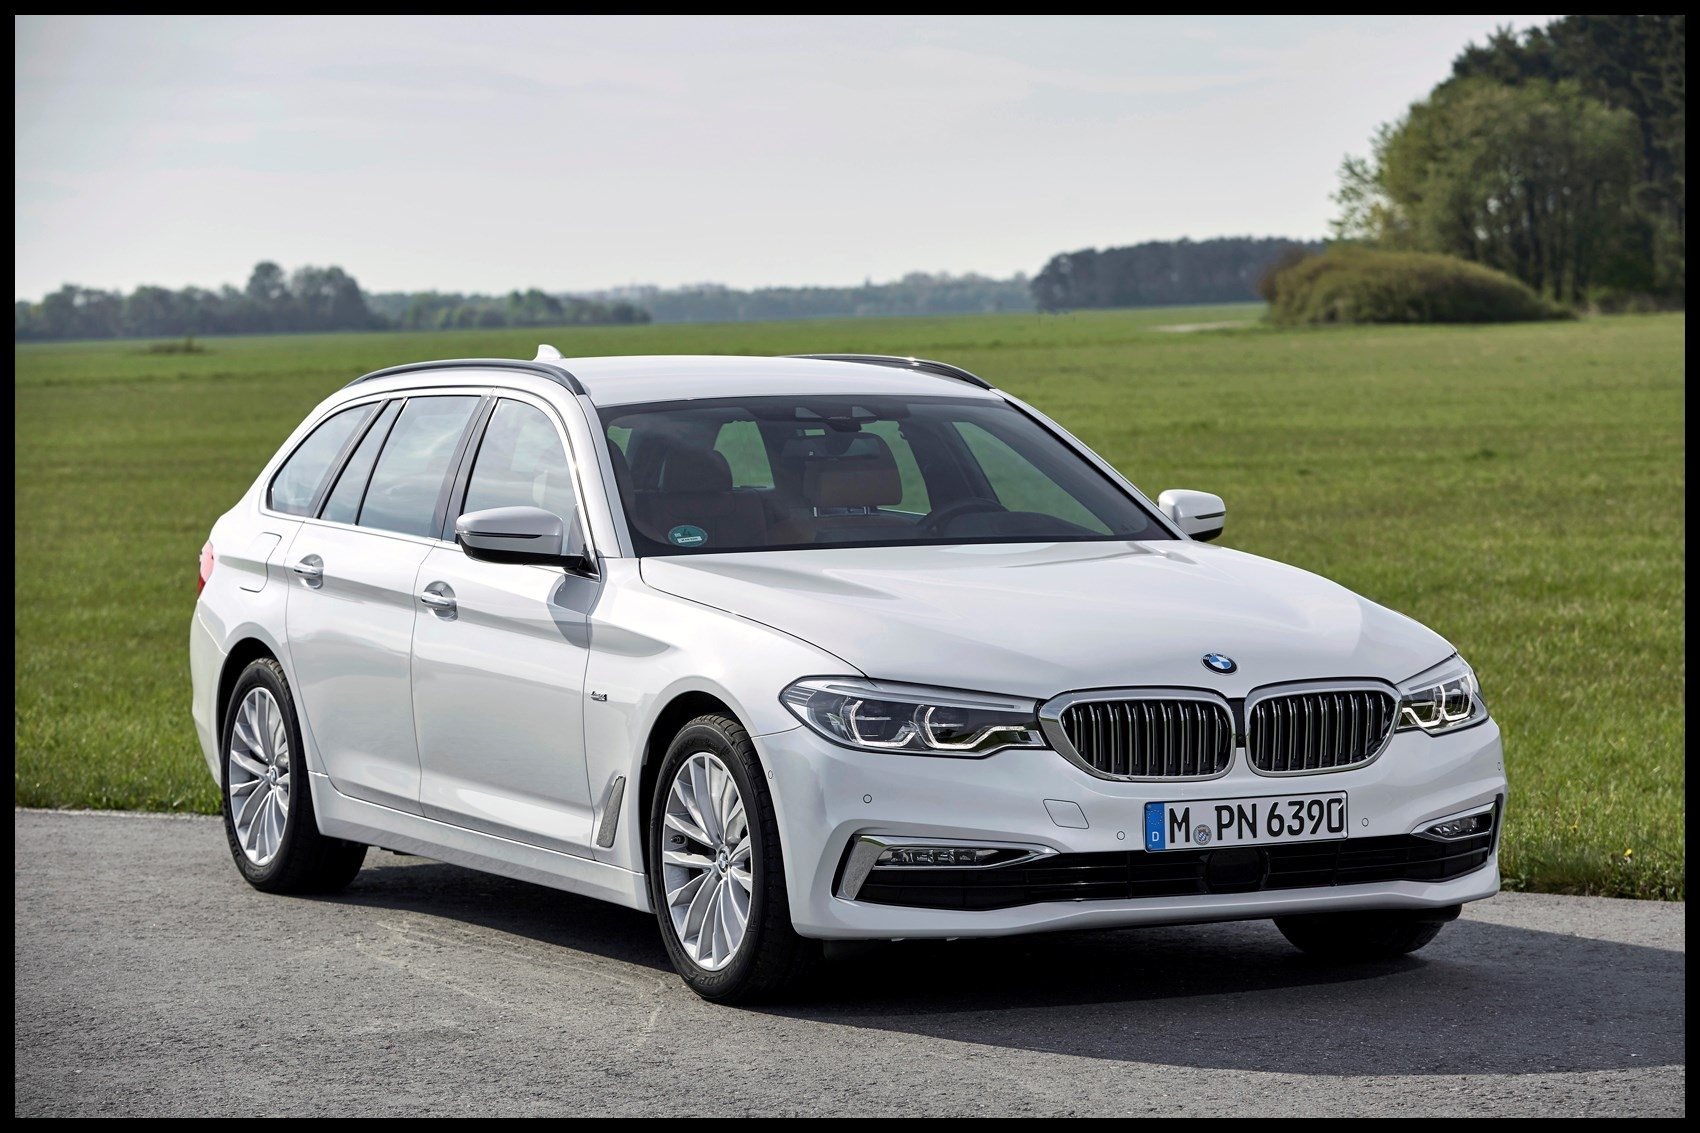 BMW 2017 5 Series Touring static exterior